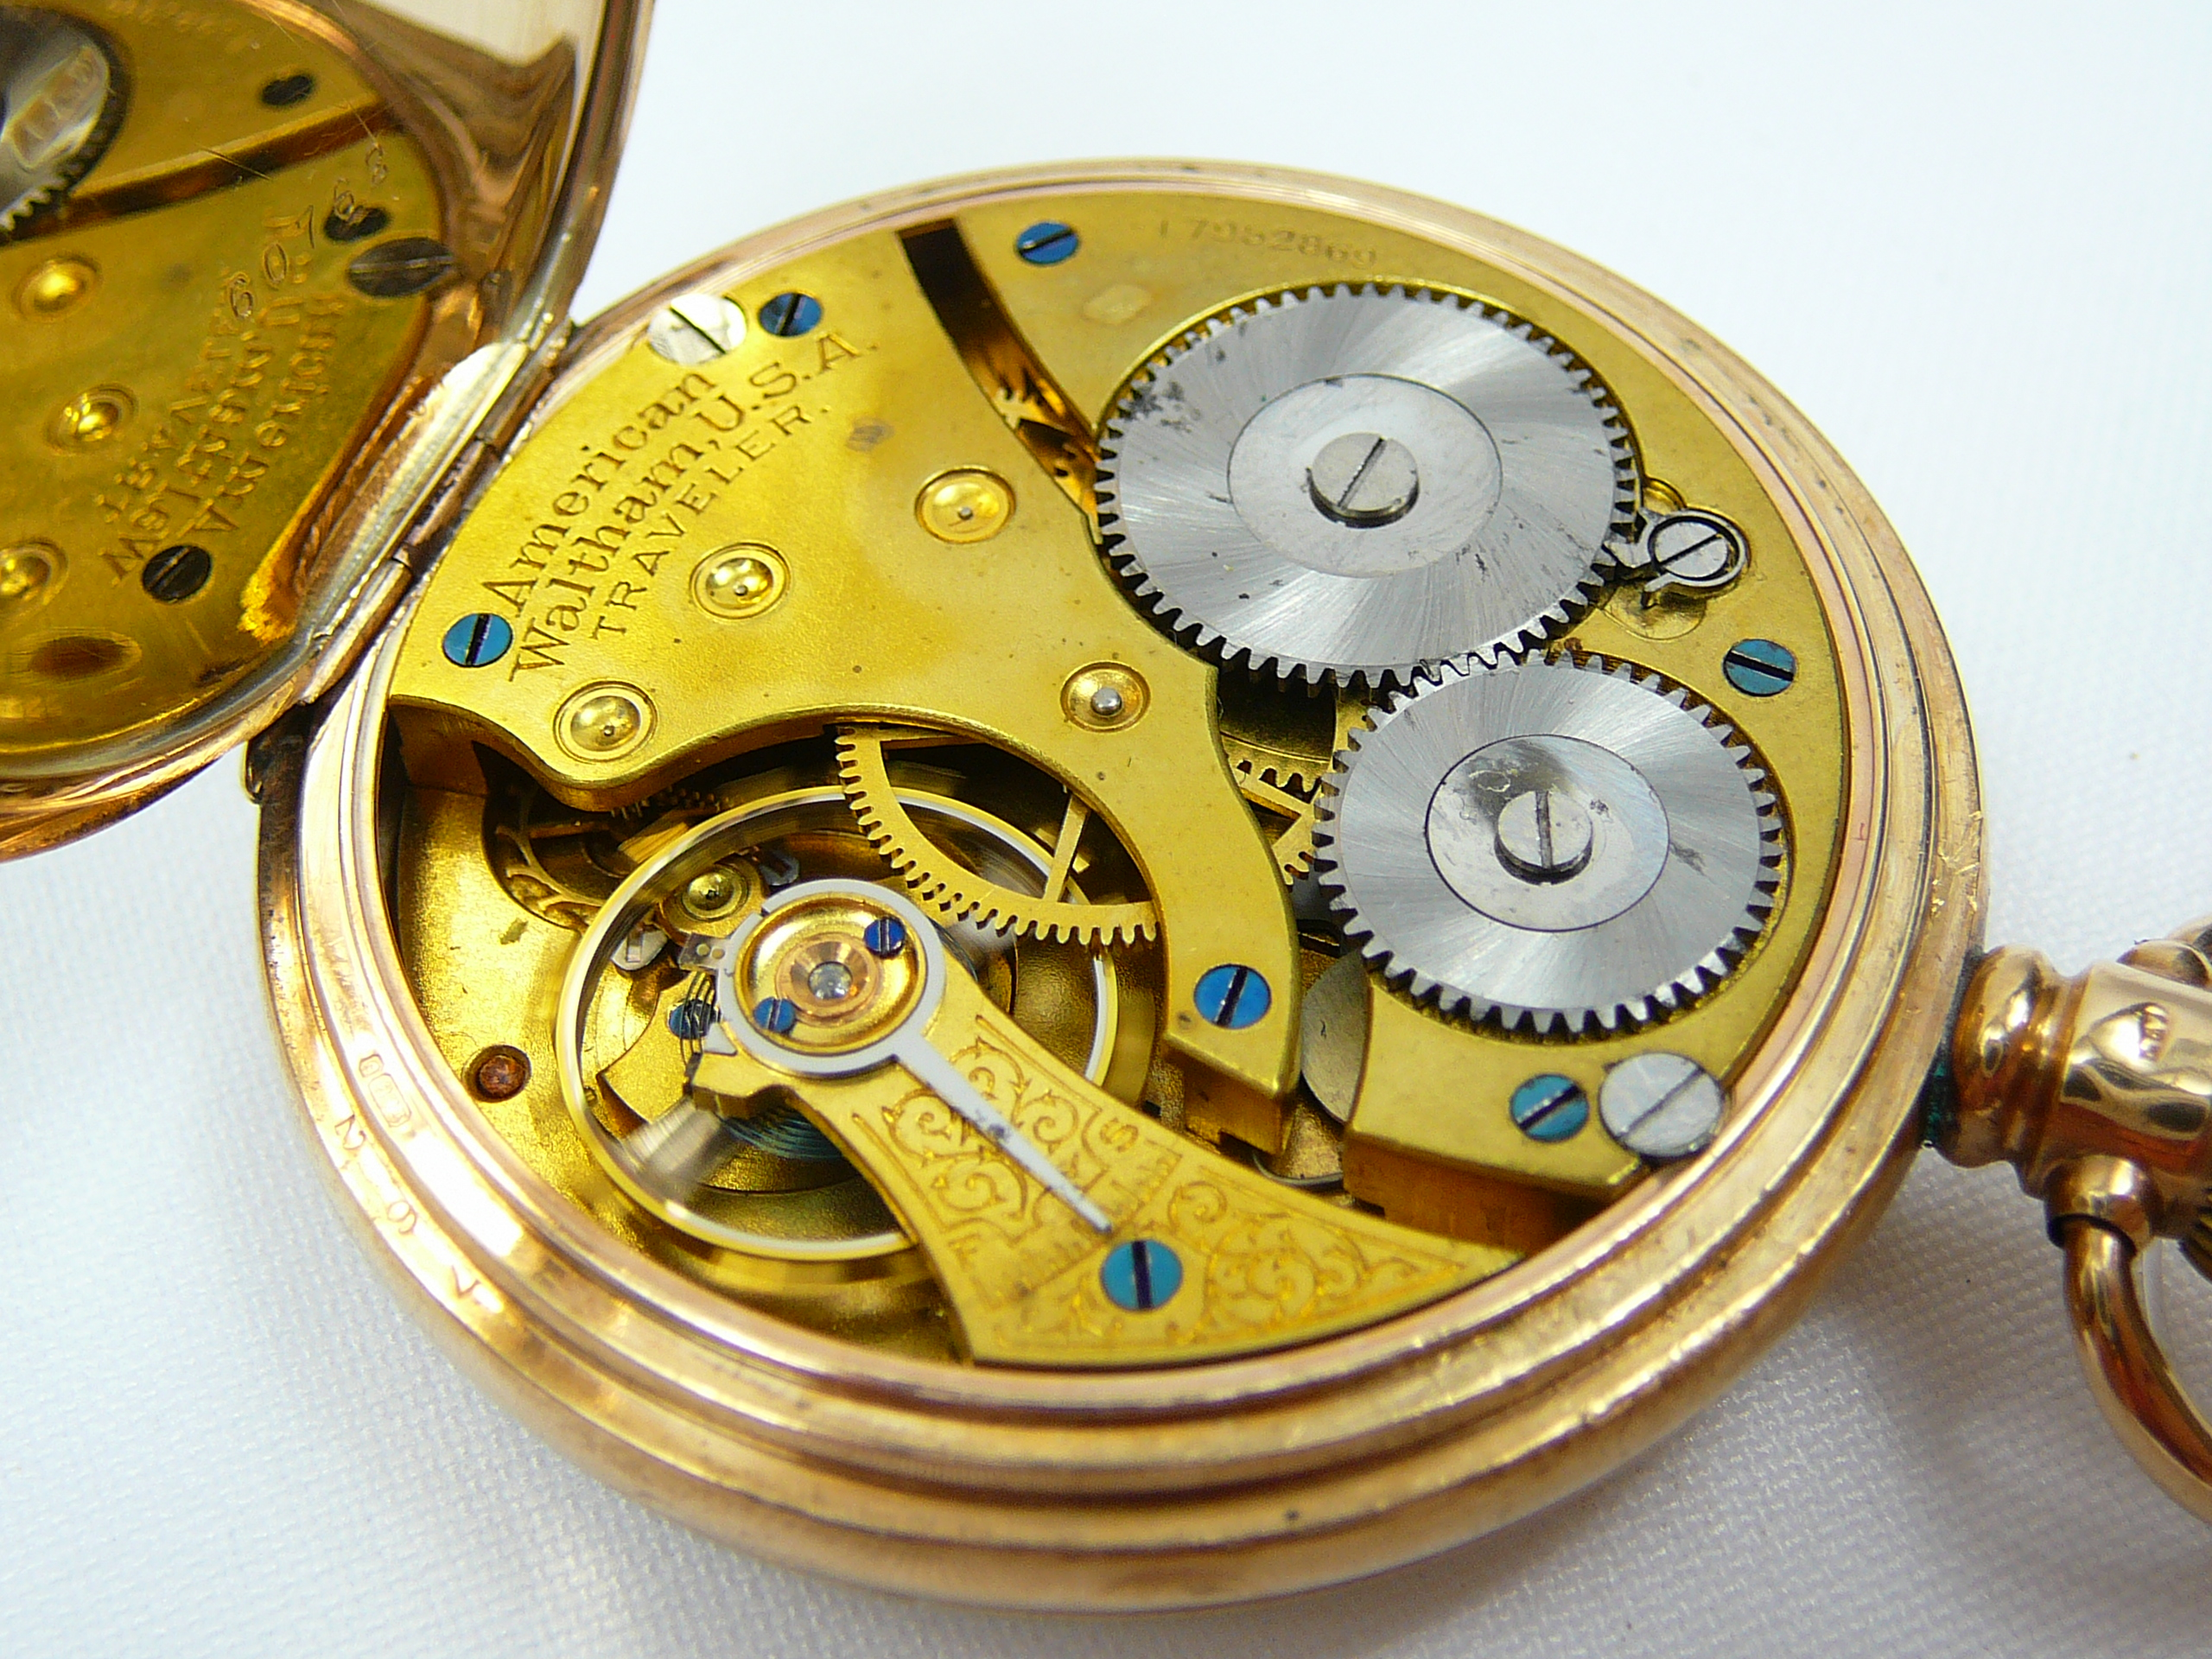 Gents Gold Pocket Watch - Image 4 of 4